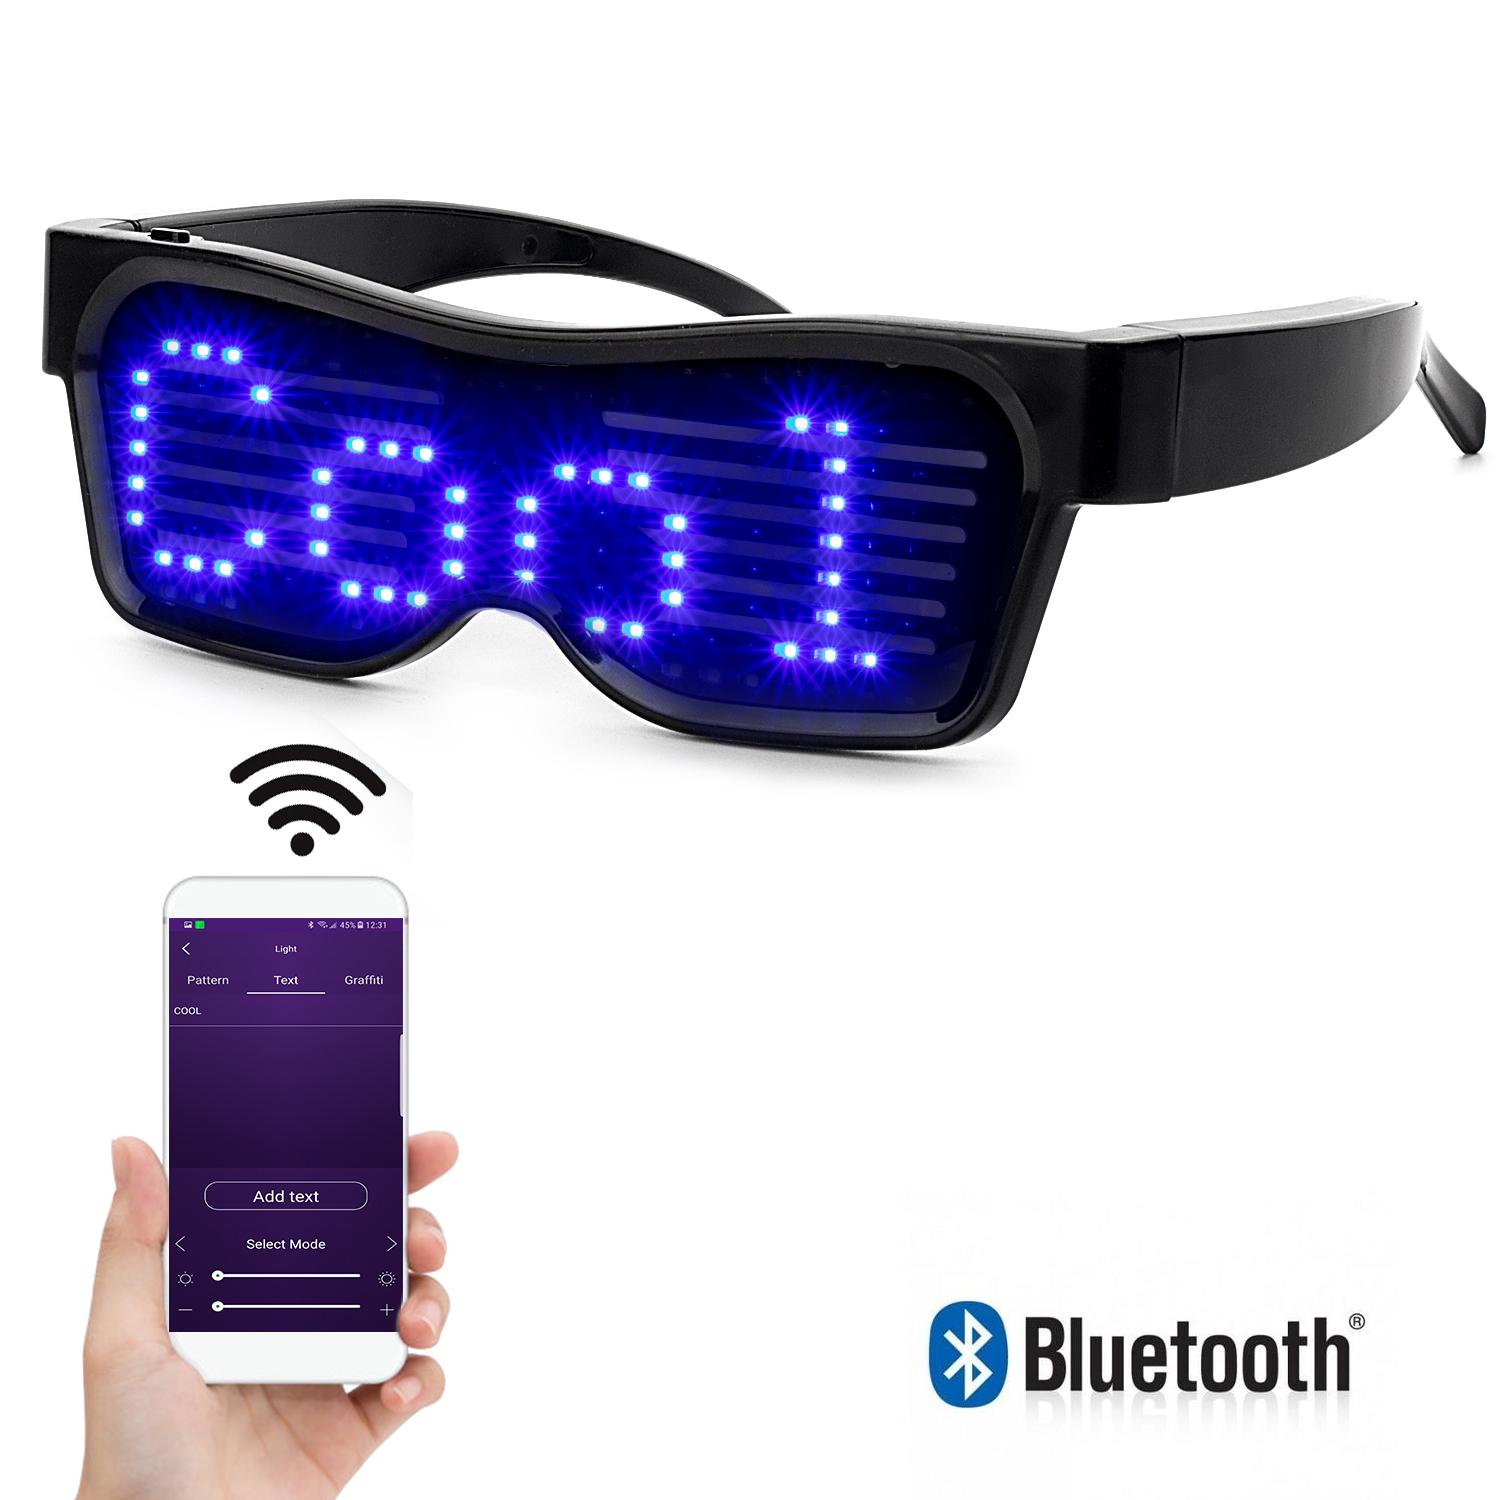 Bluetooth Programmable Text USB Charging LED Display Glasses Dedicated Nightclub DJ Holiday Party Birthday Children's Toy Gift